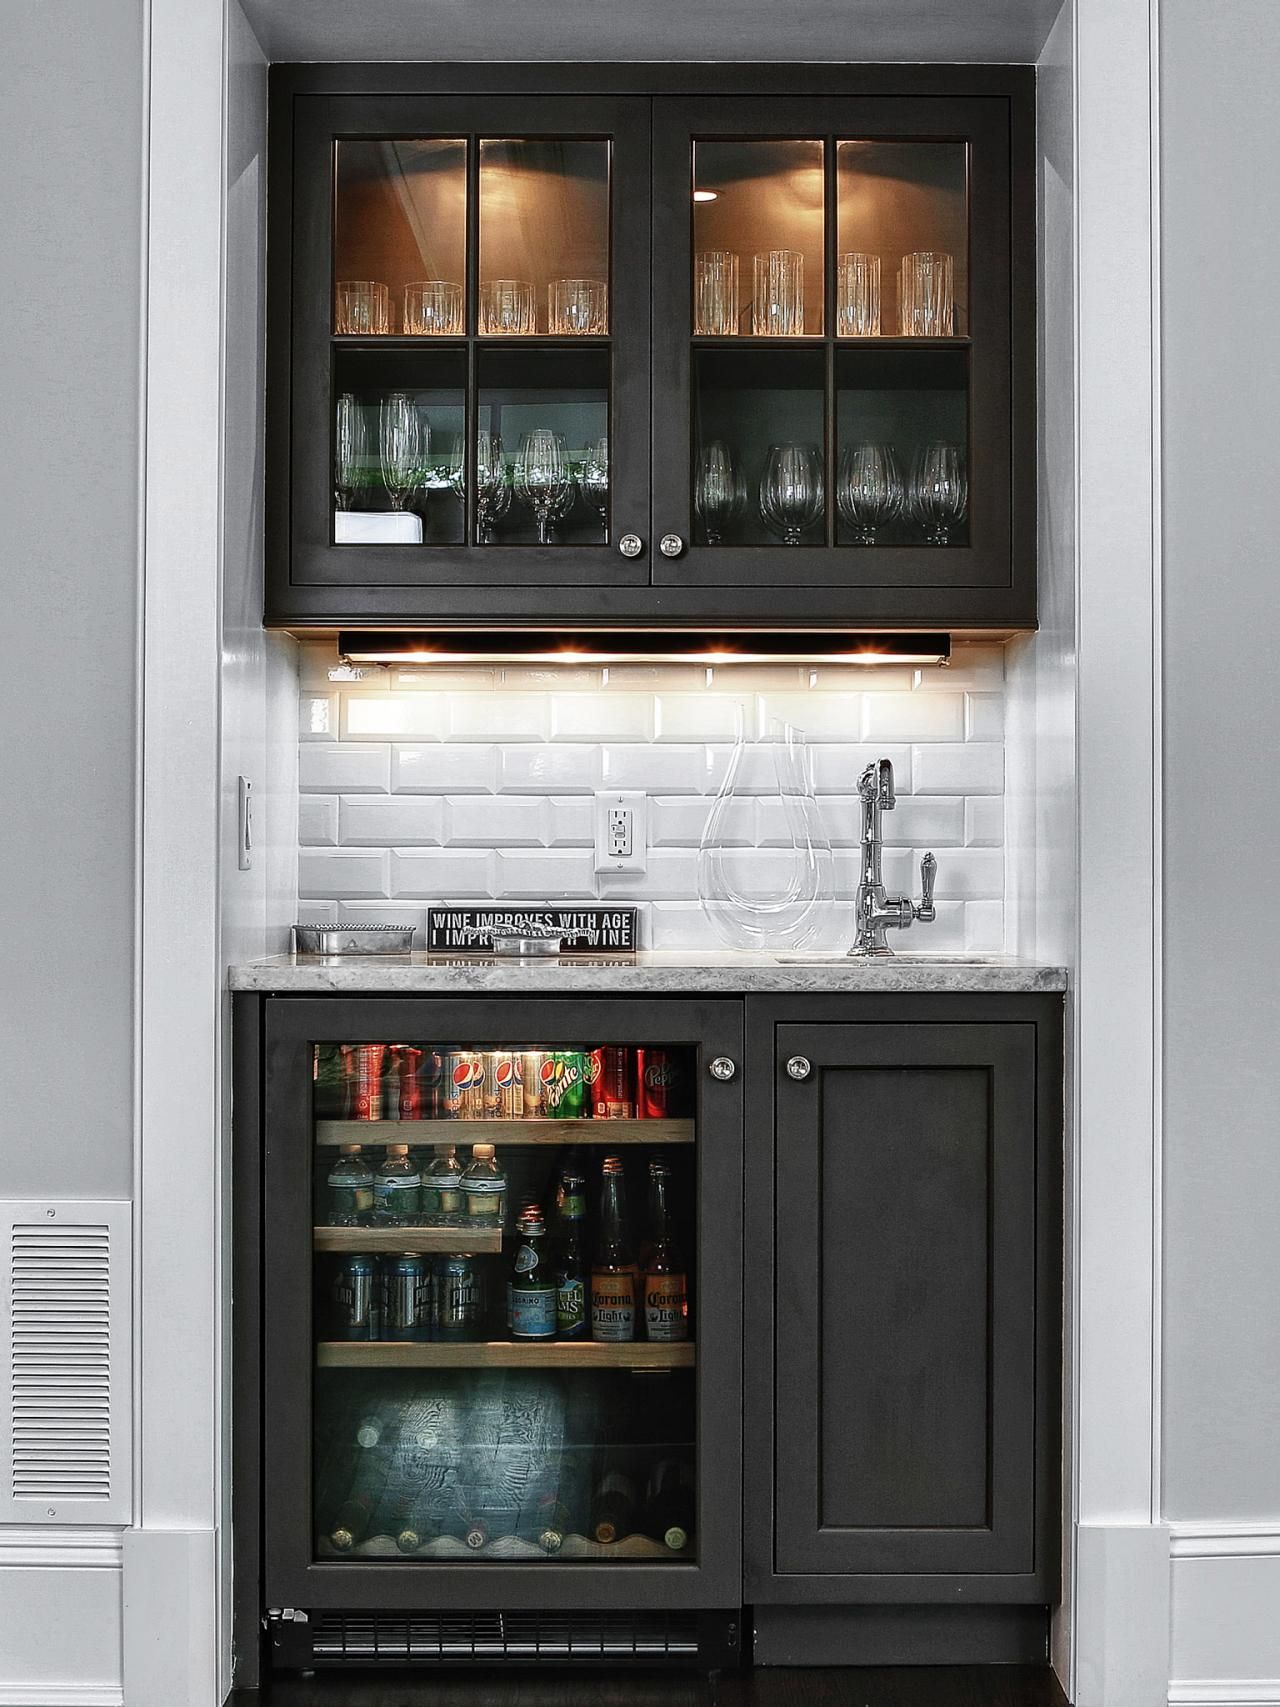 Lovely 15 Stylish Small Home Bar Ideas | Home Remodeling   Ideas For Basements,  Home Theaters U0026 More | HGTV